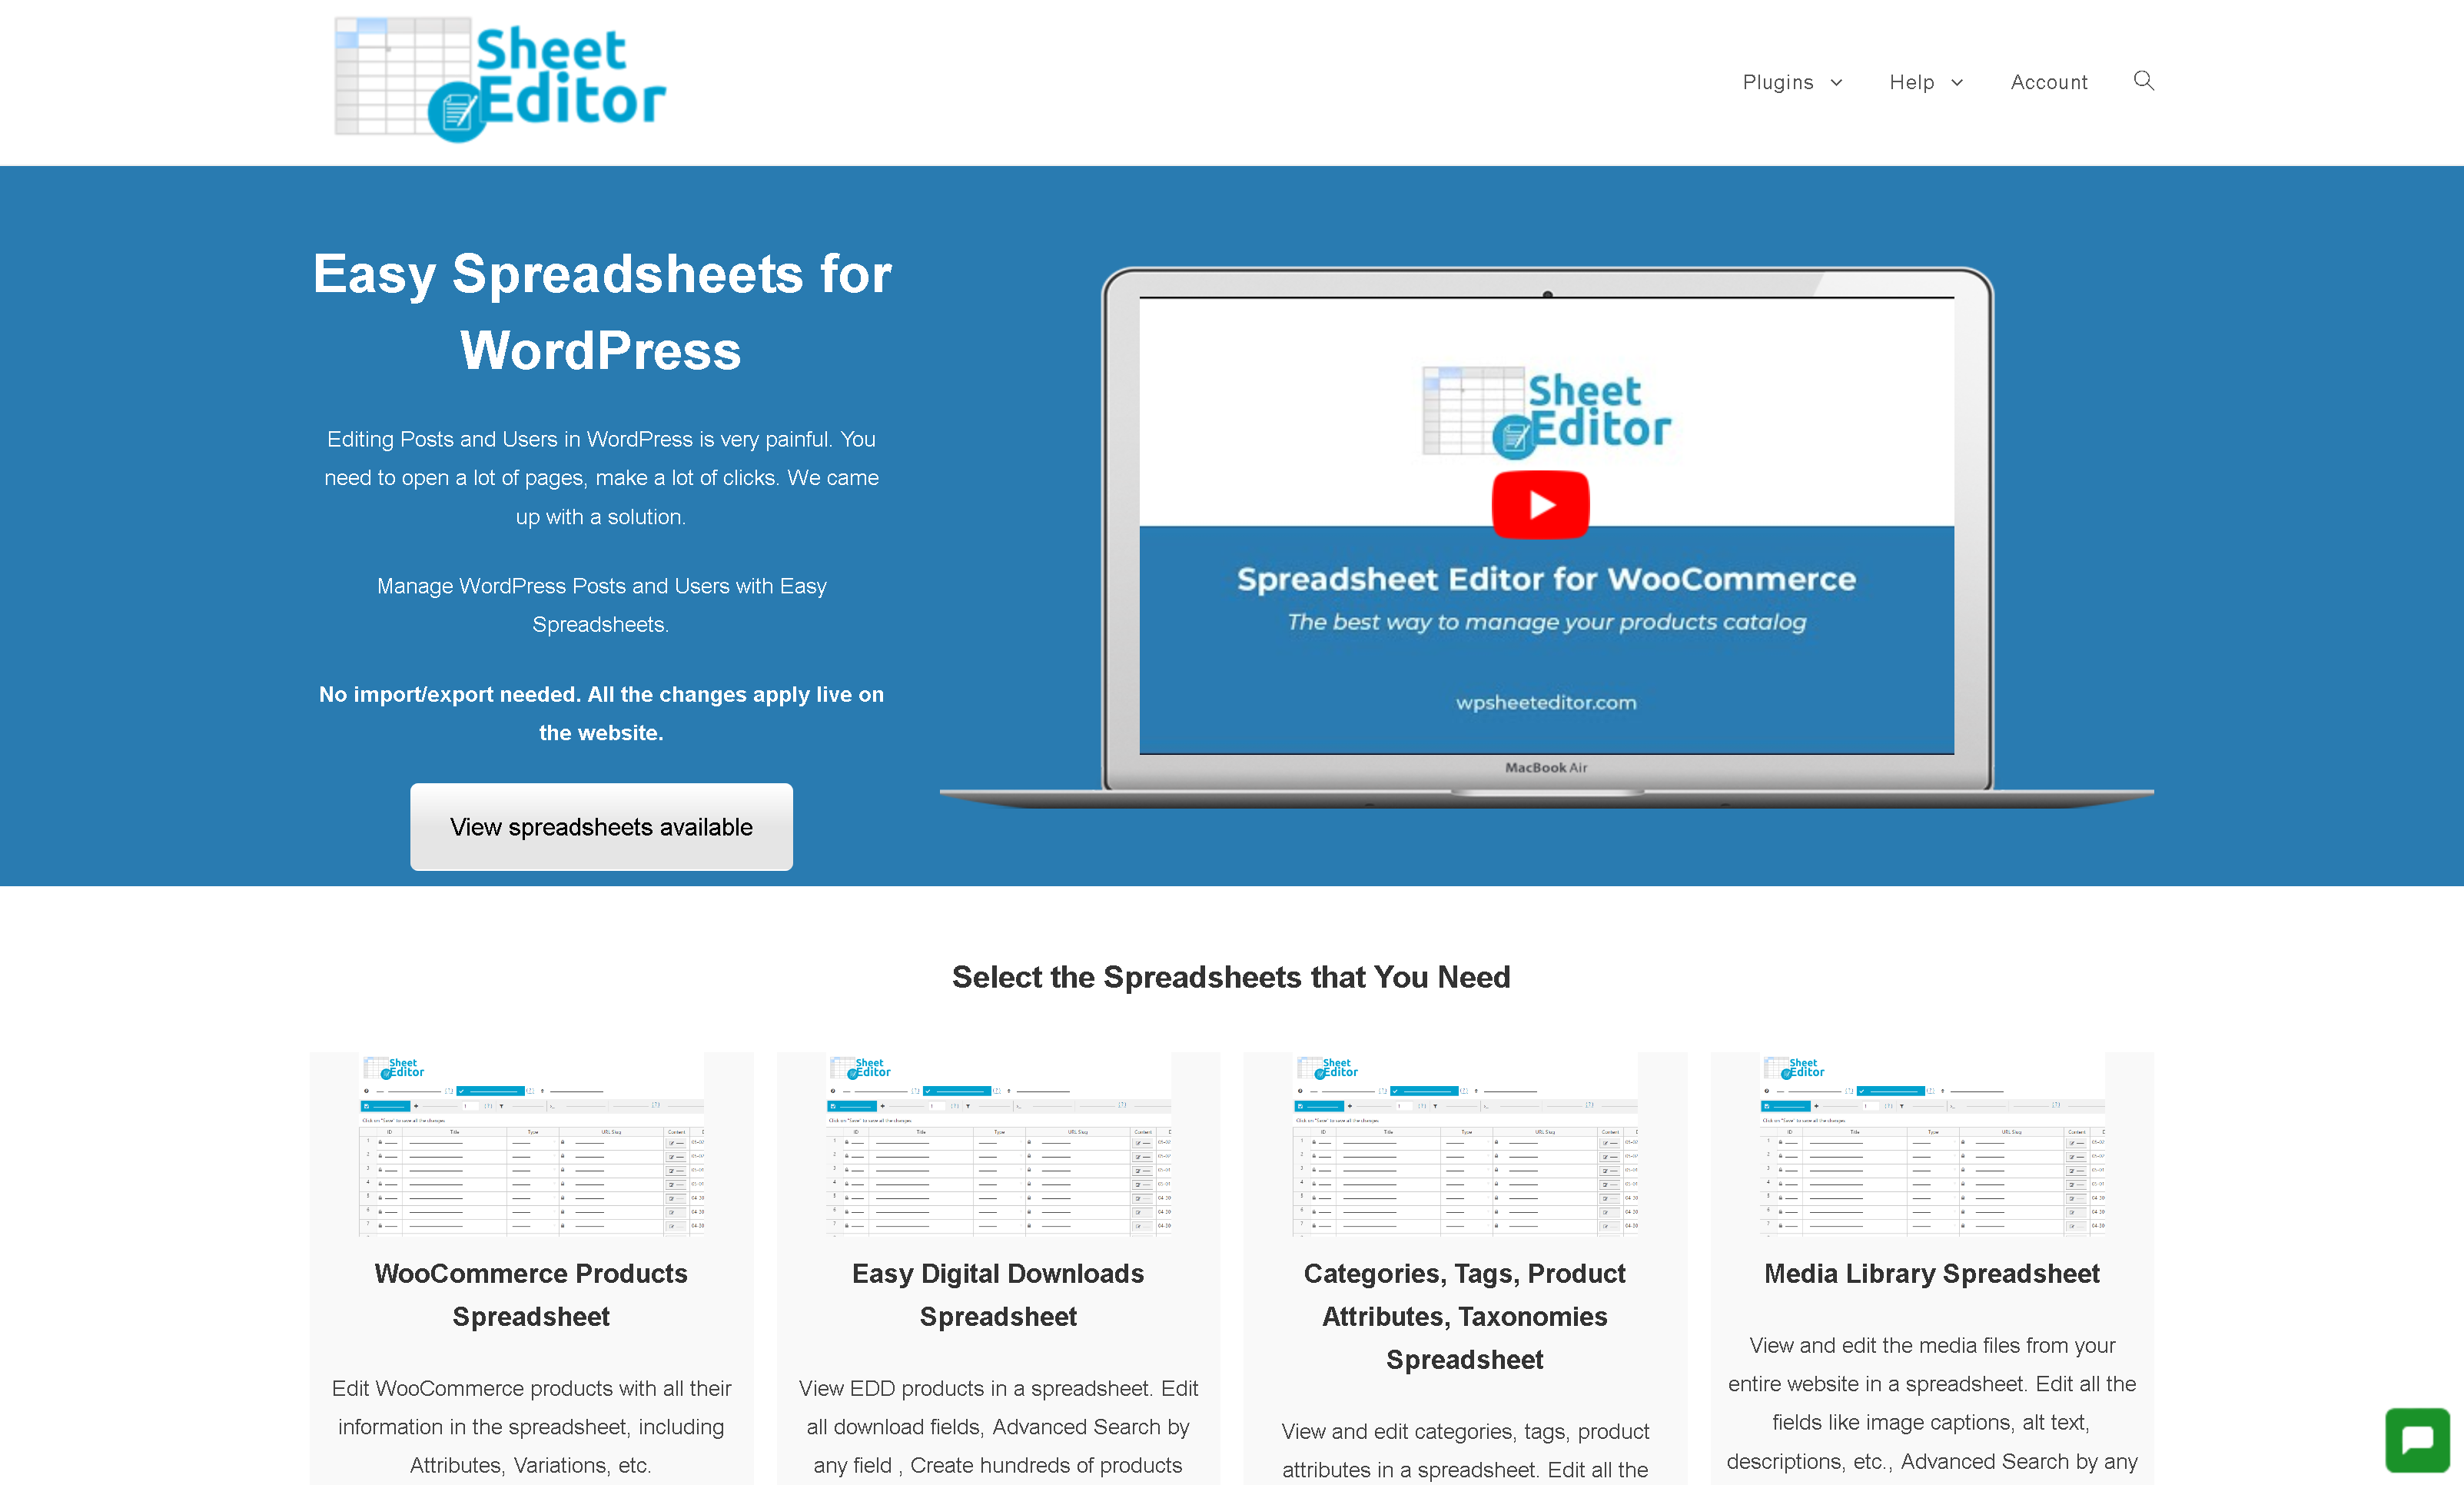 Gpl Wp Sheet Editor Premium 2 23 0 Easy Spreadsheets For Wordpress With License Free Updates